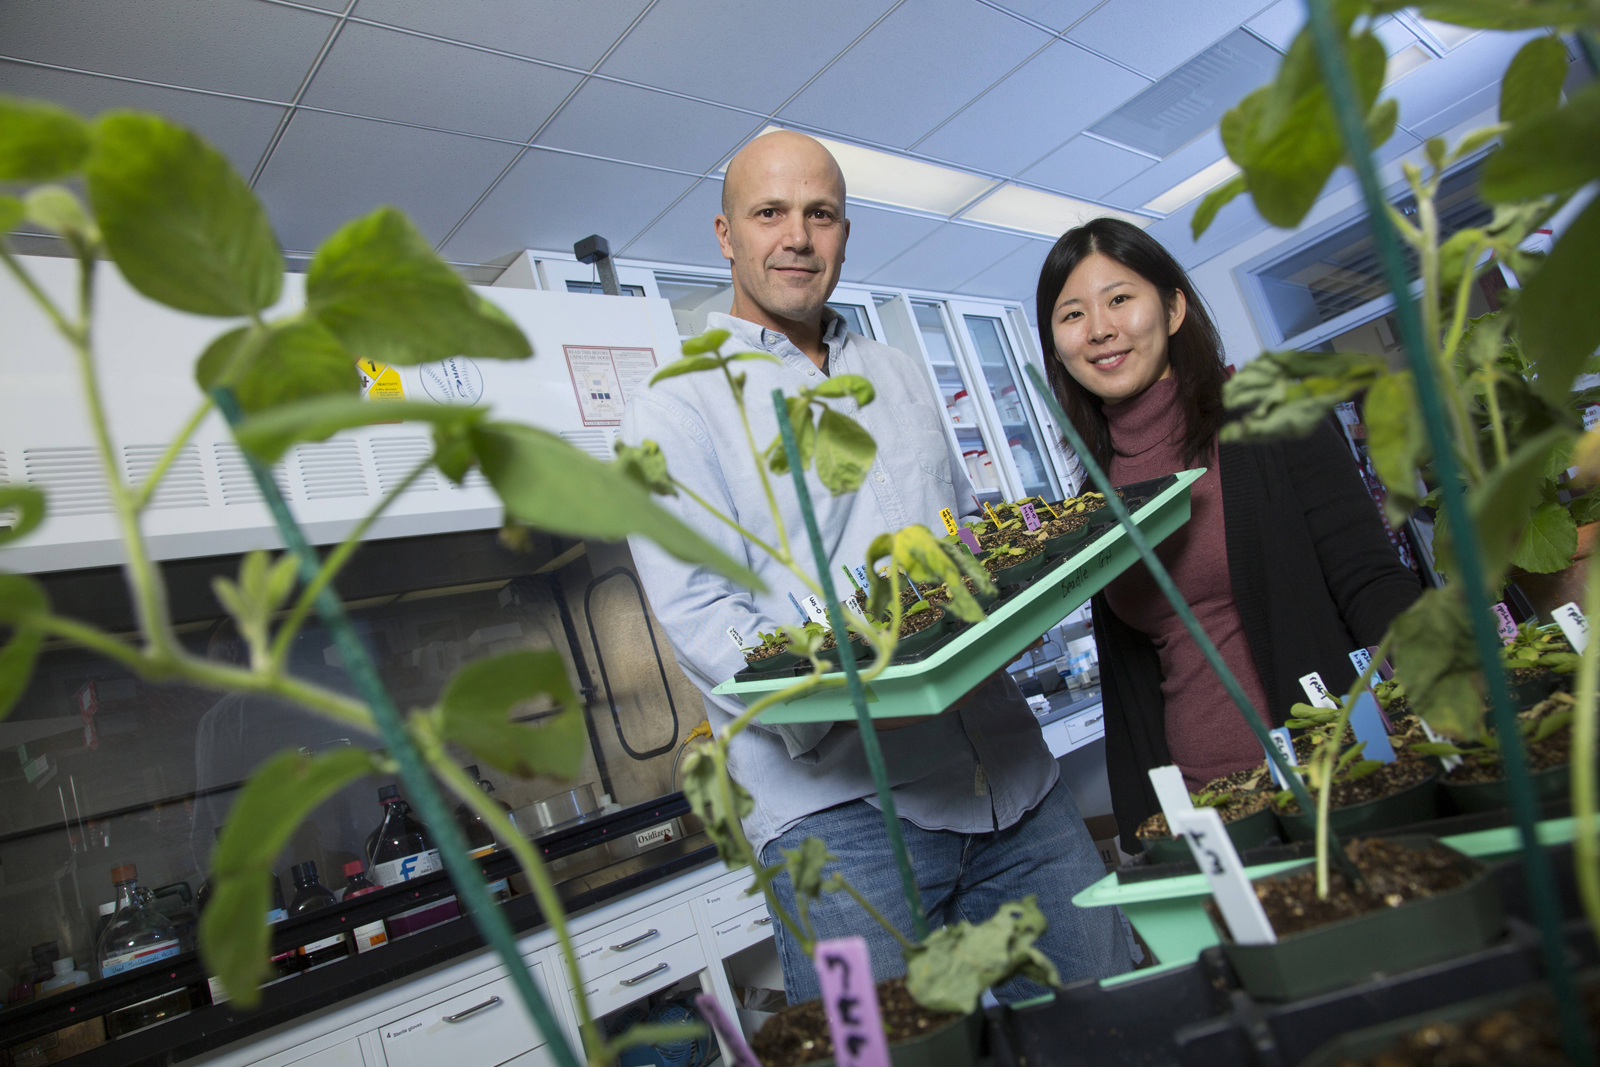 Jim Alfano (left) and graduate student Anna Joe inspect plants in the lab.